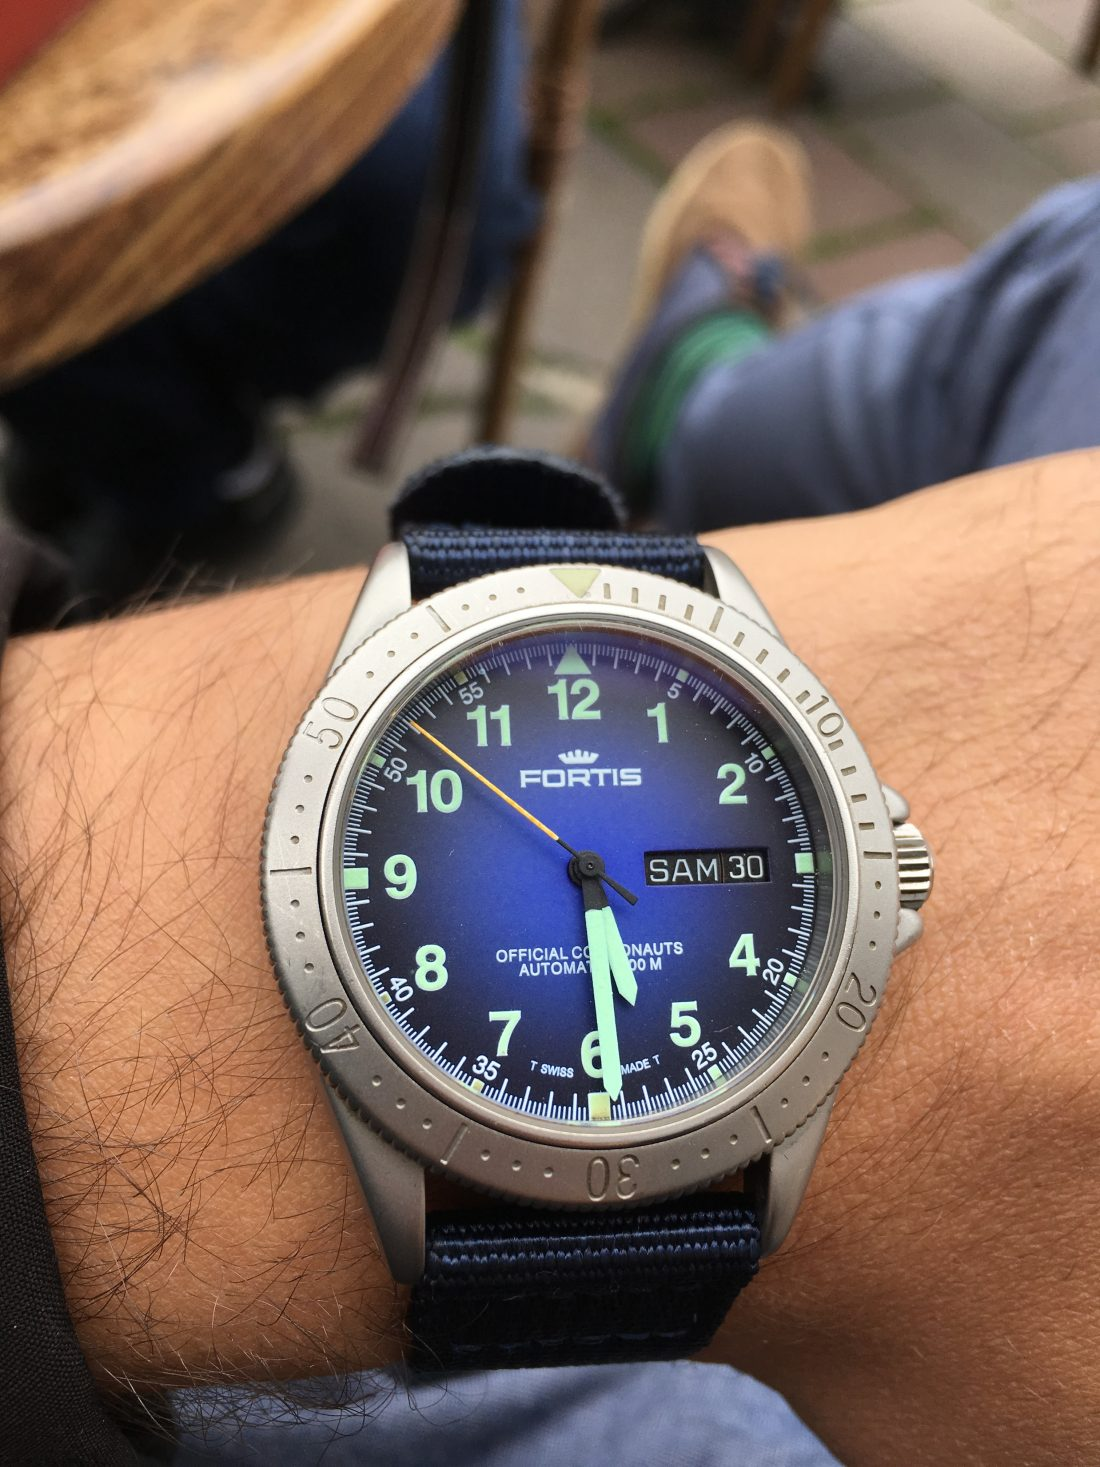 Fortis Official Cosmonauts